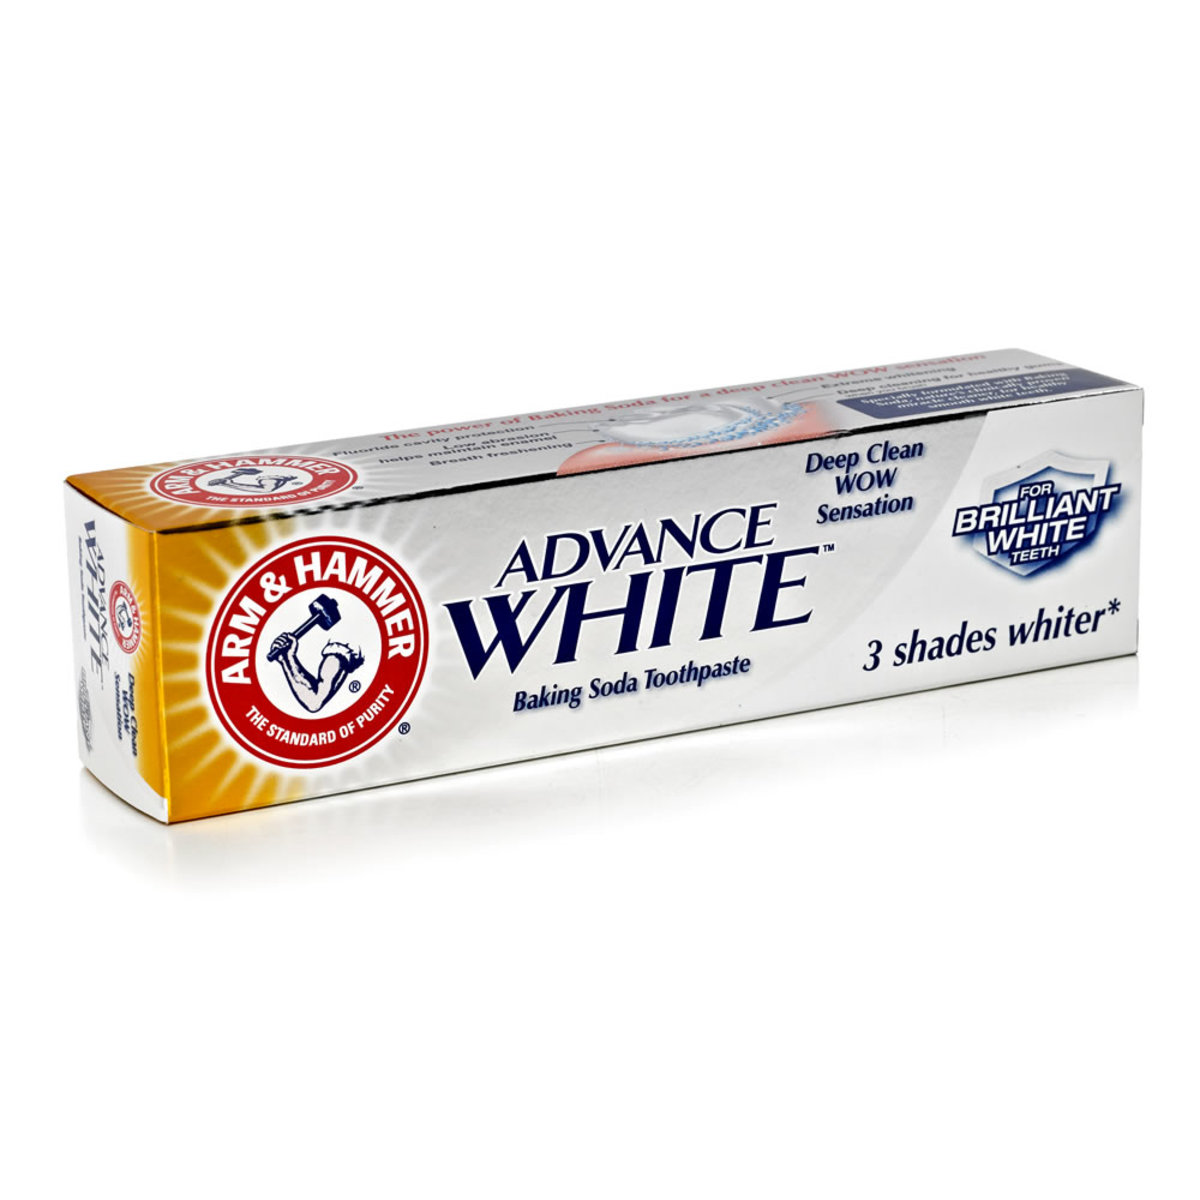 Using whitening toothpaste (especially one with baking soda) is a great natural way to whiten yellow nails.